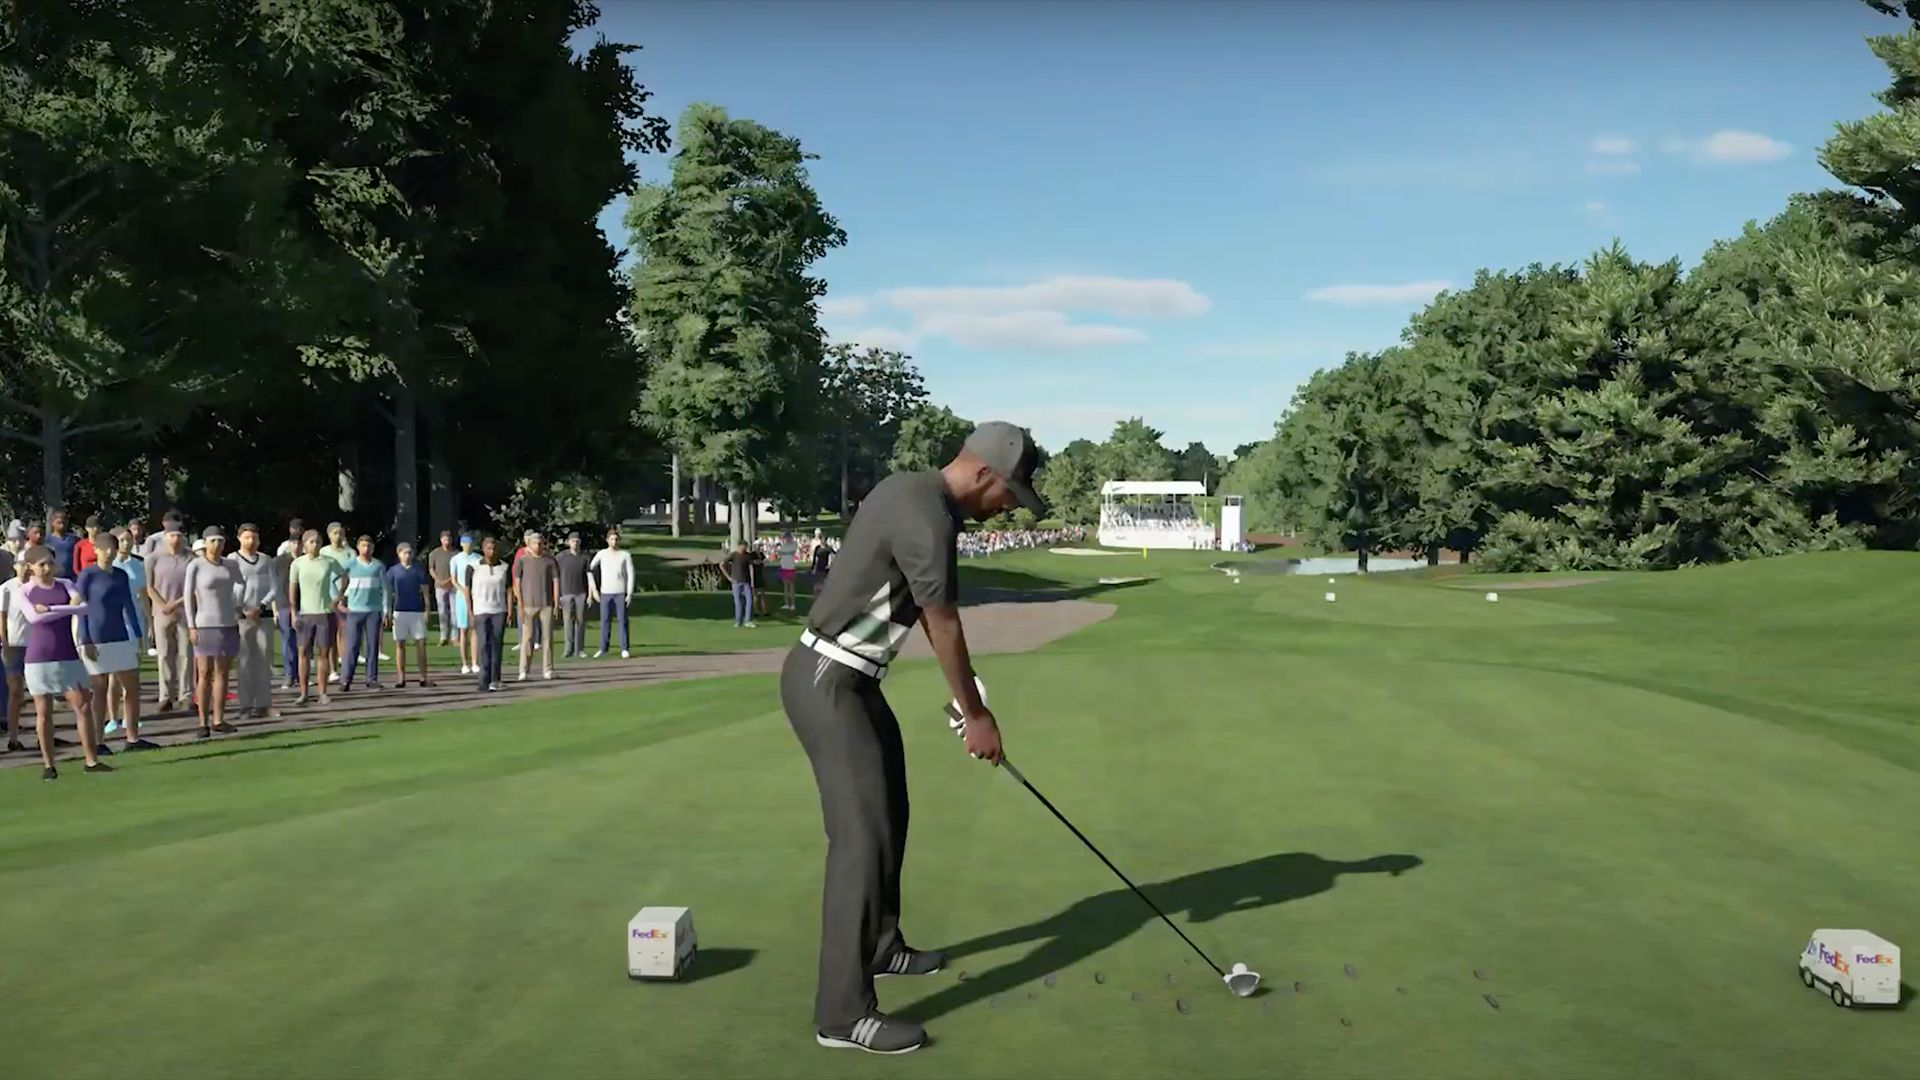 GET A PEEK AT THE 15 LICENSED PGA COURSES IN PGA TOUR 2K21